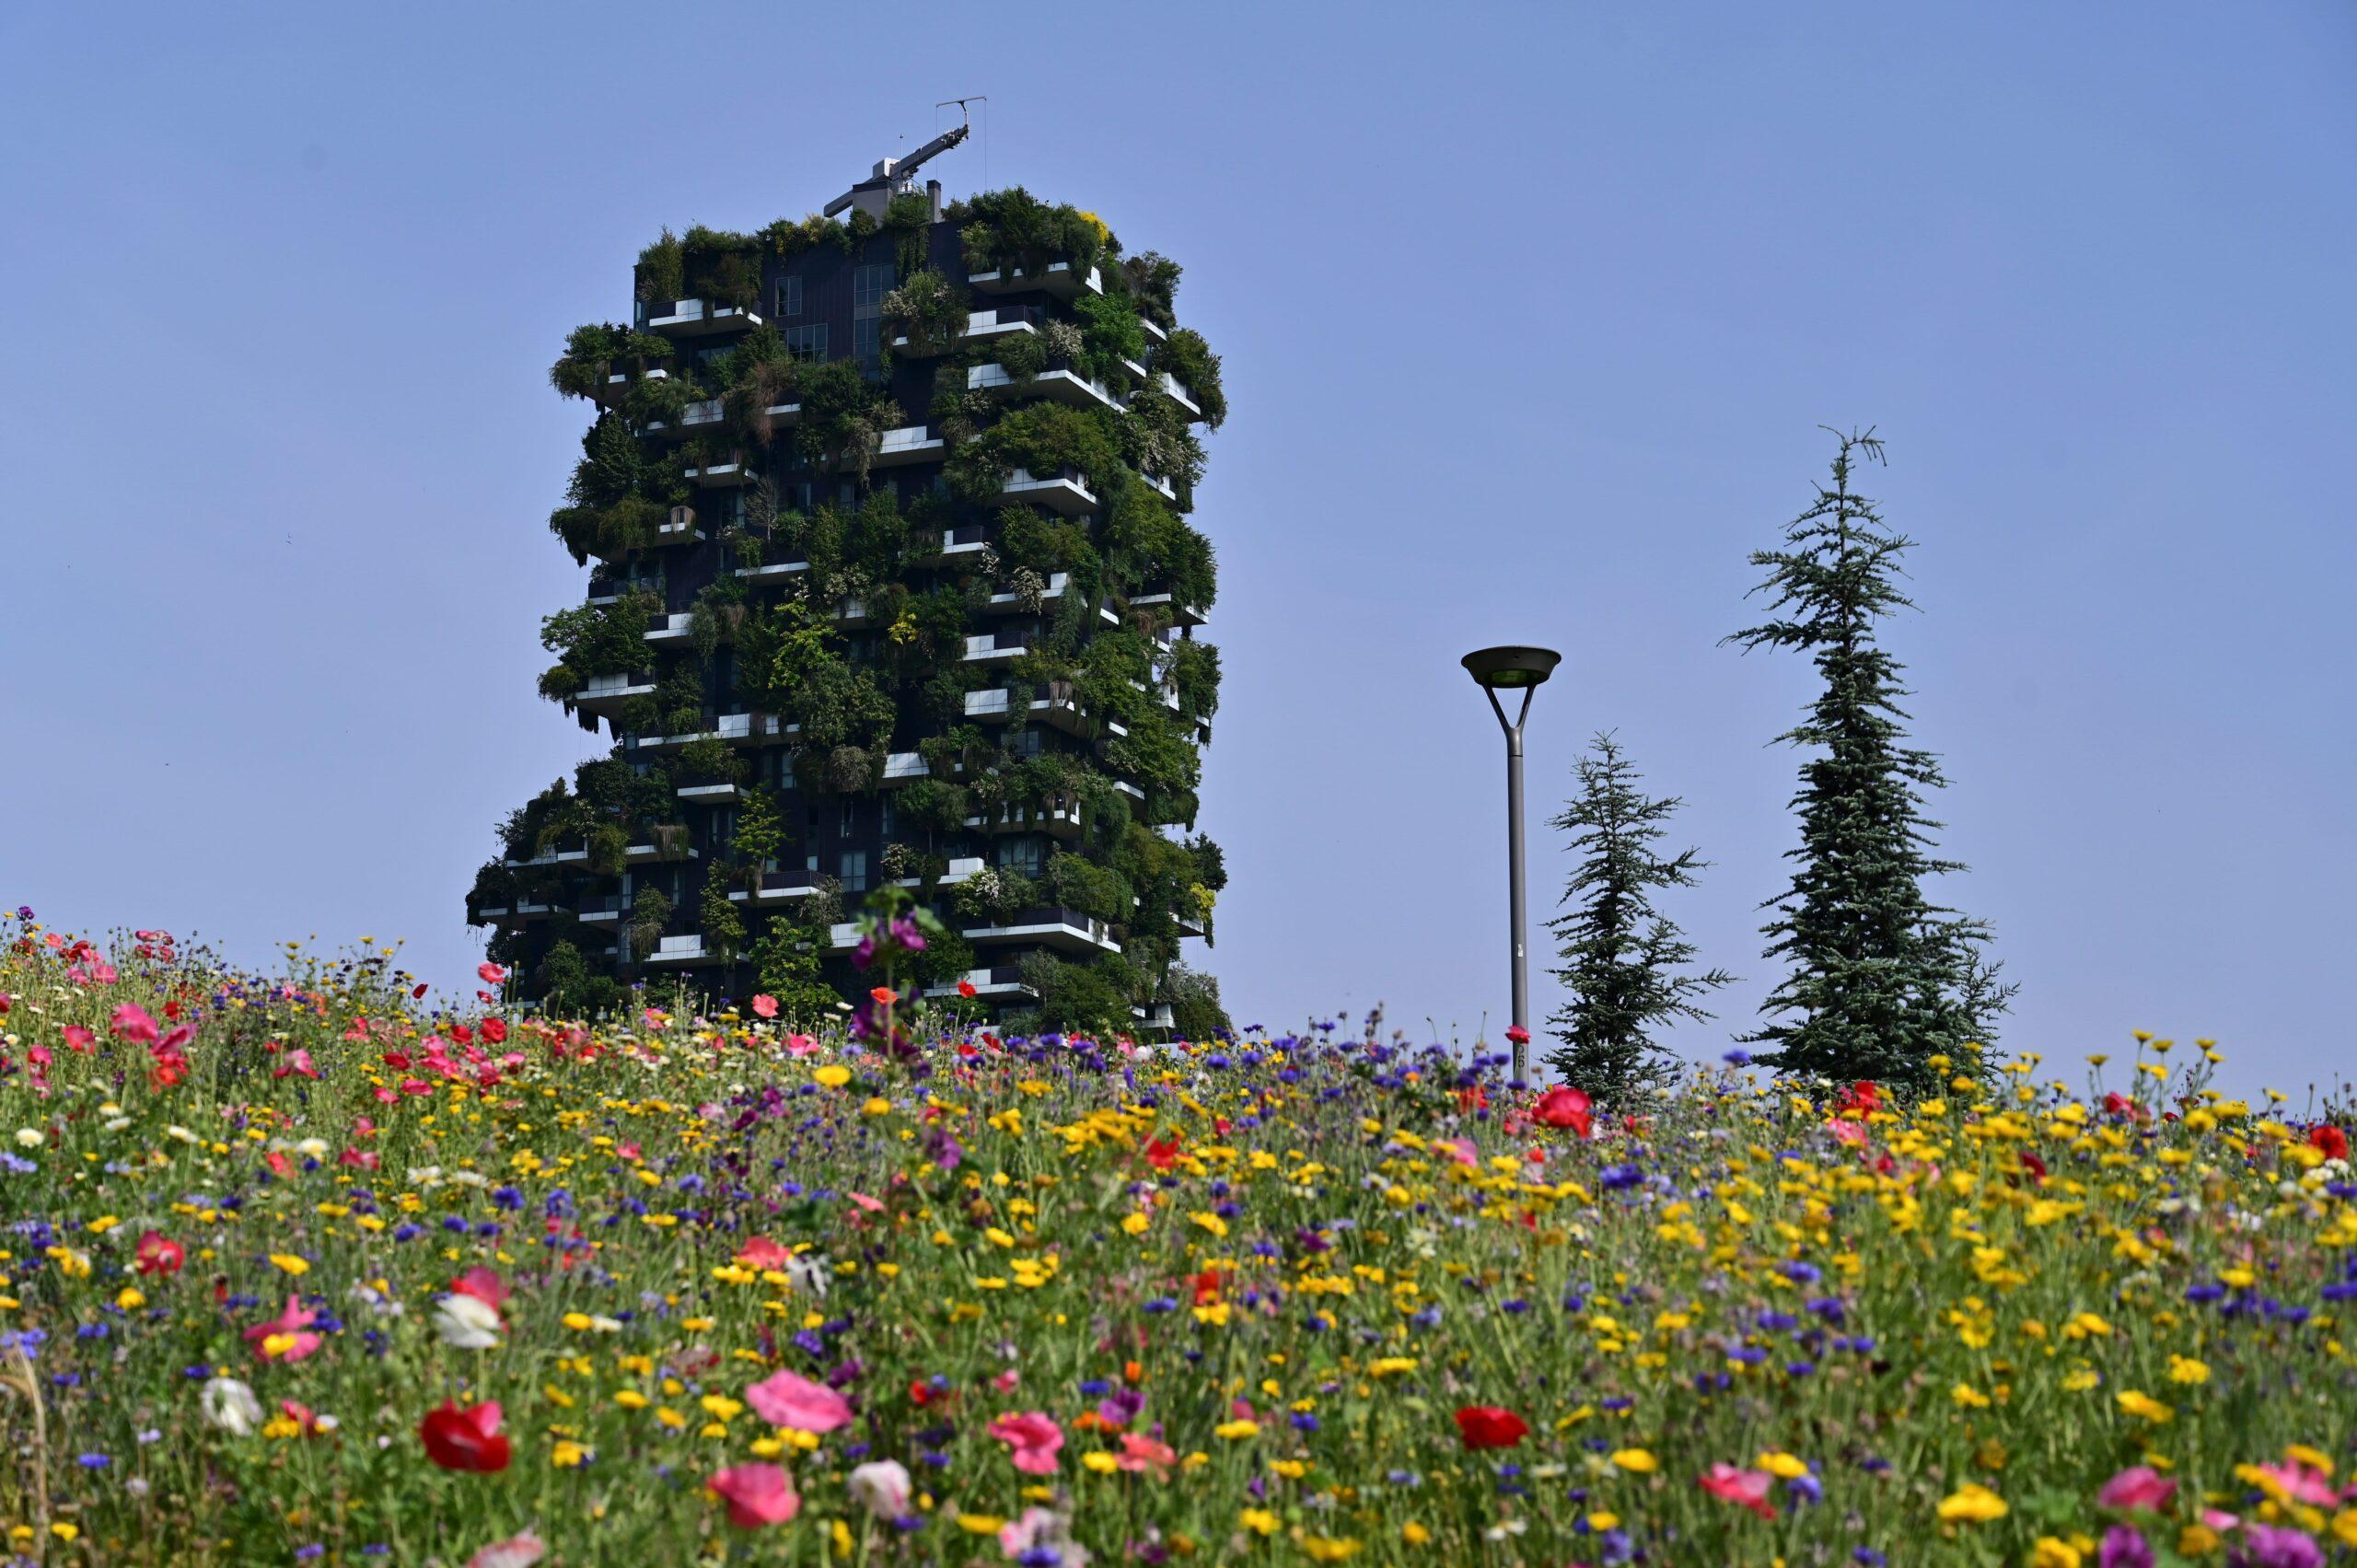 A 'mutant building' in Milan is saving energy and pleasing residents